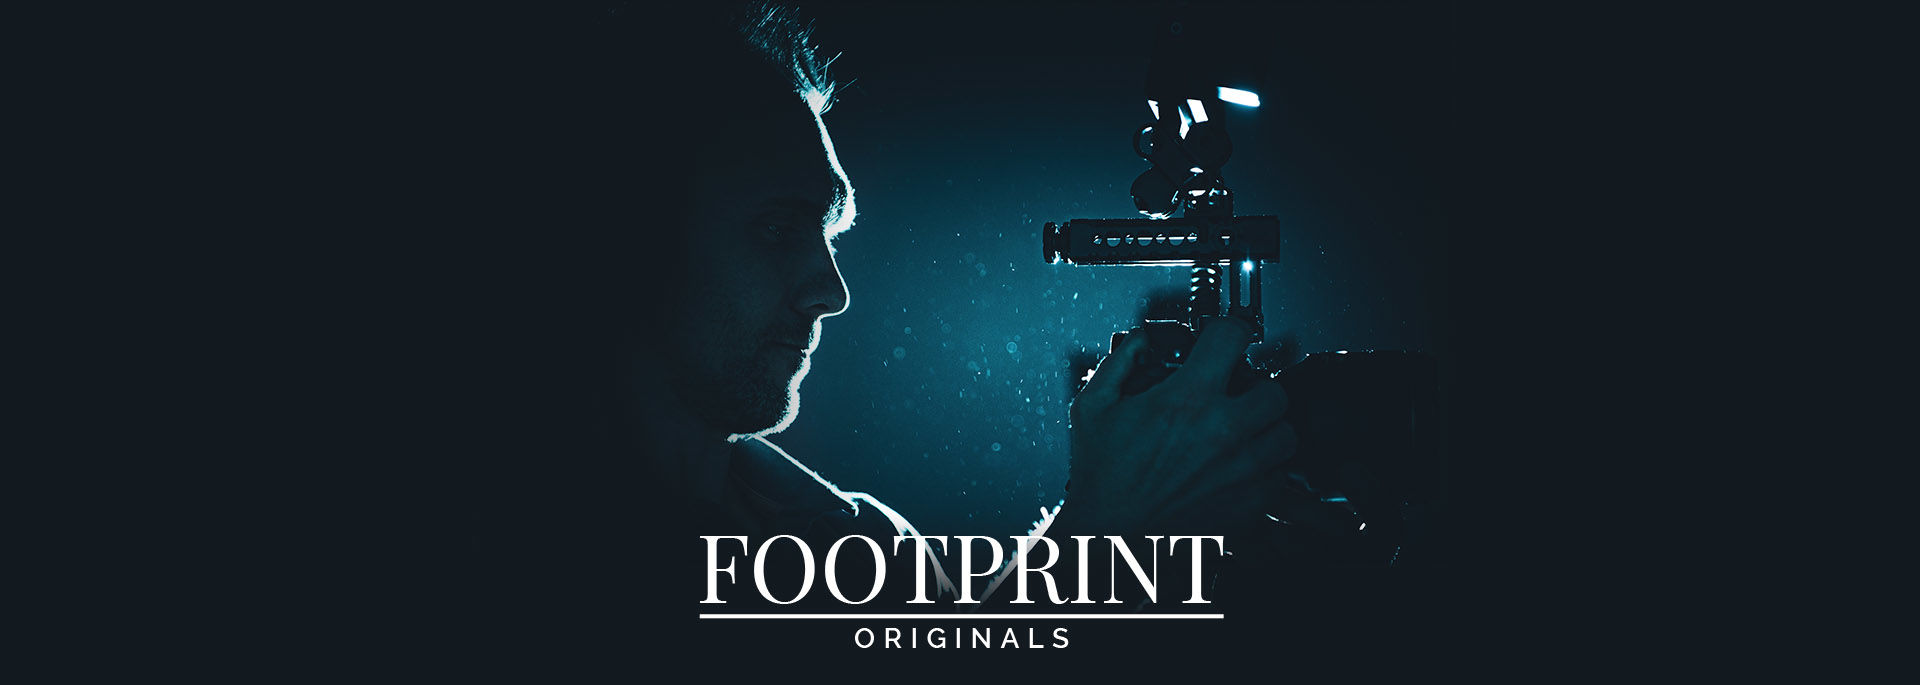 FOOTPRINT ORIGINALS channel